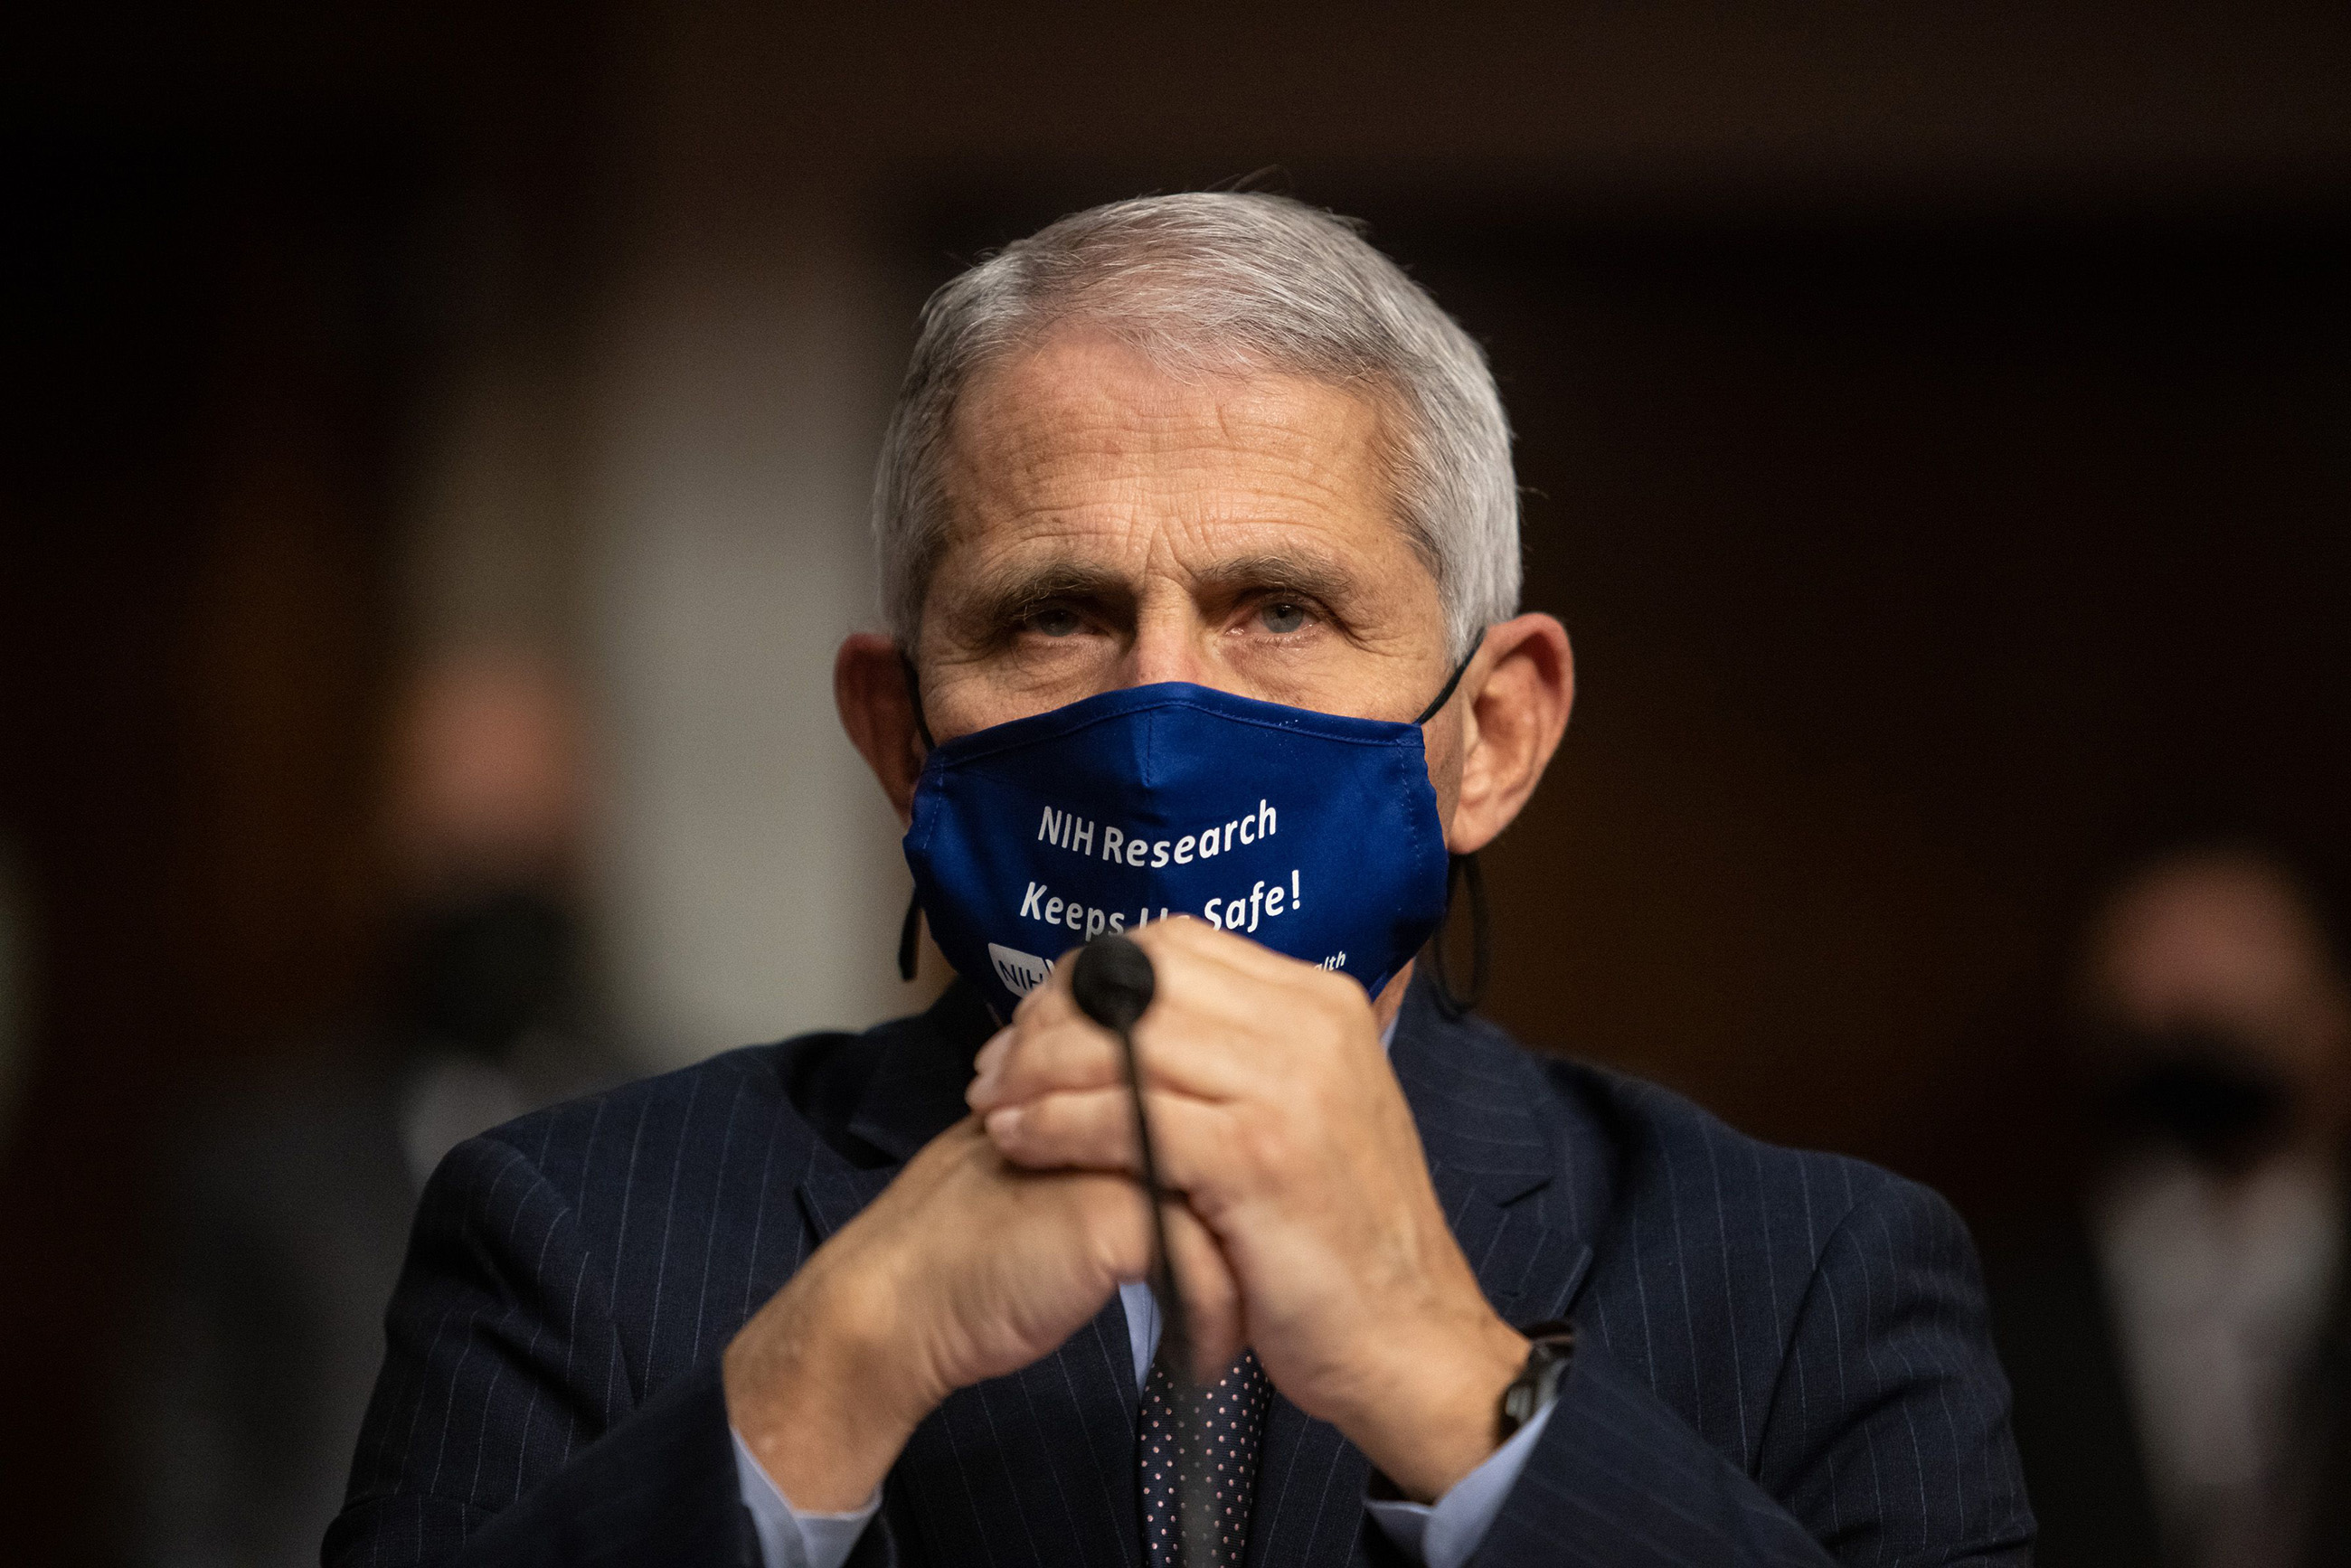 Dr. Anthony Fauci, Director of National Institute of Allergy and Infectious Diseases at the National Institutes of Health, testifies during a committee hearing on Capitol Hill in Washington, DC, on September 23.